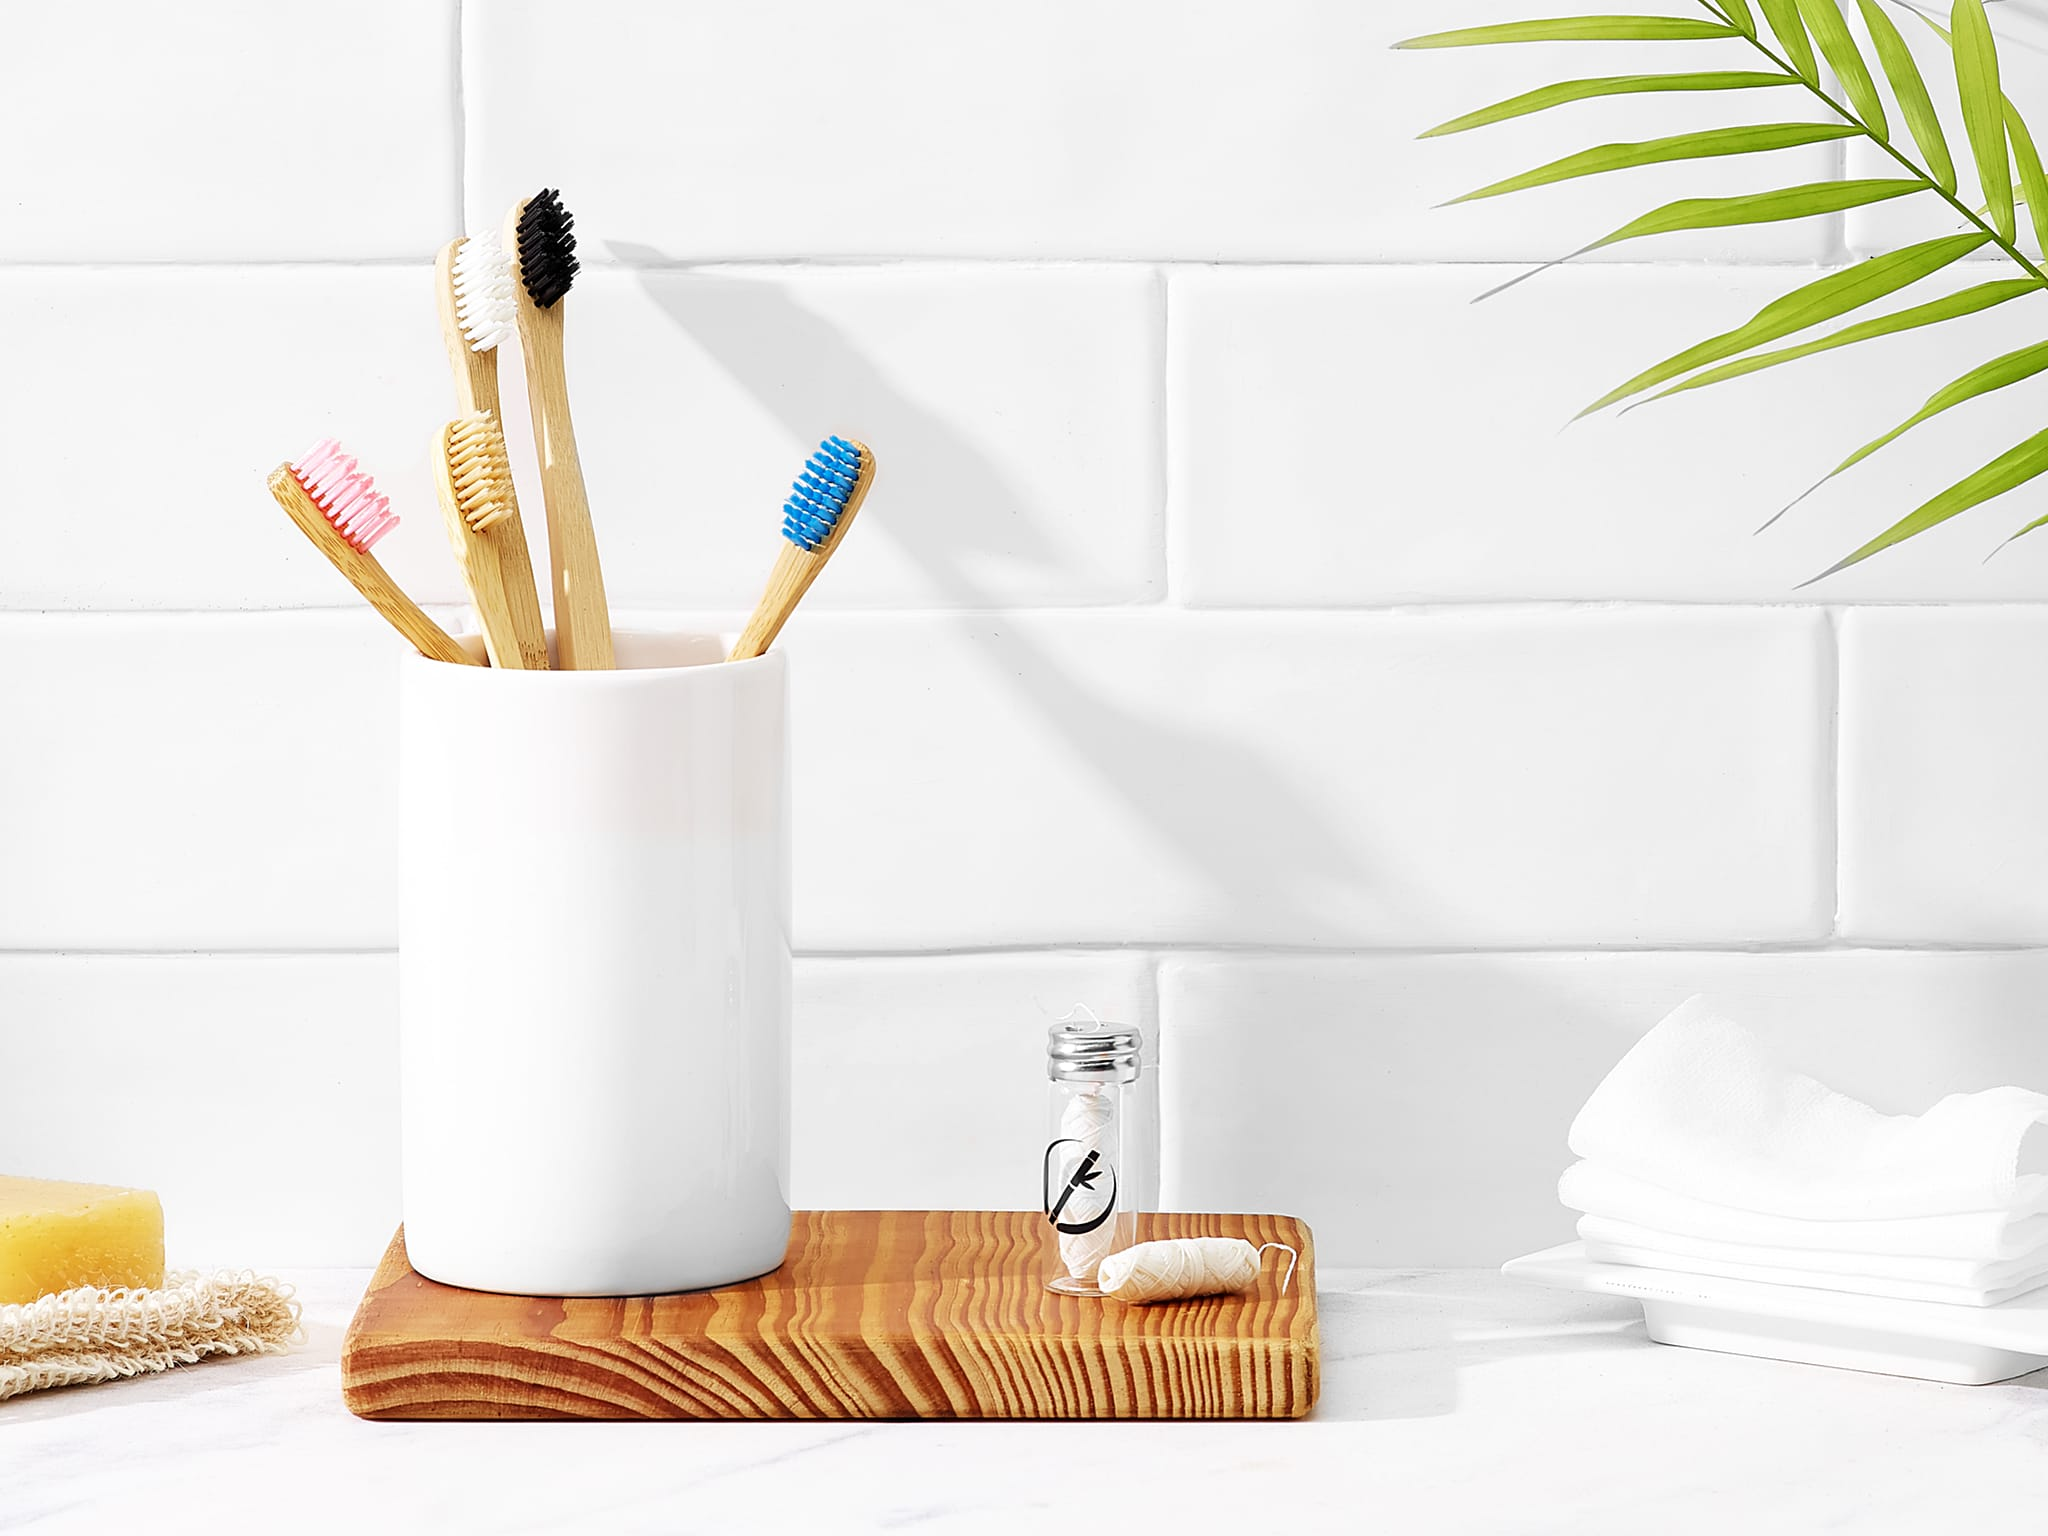 Product photography for Planet Bamboo of bambu toothbrushes and dental floss